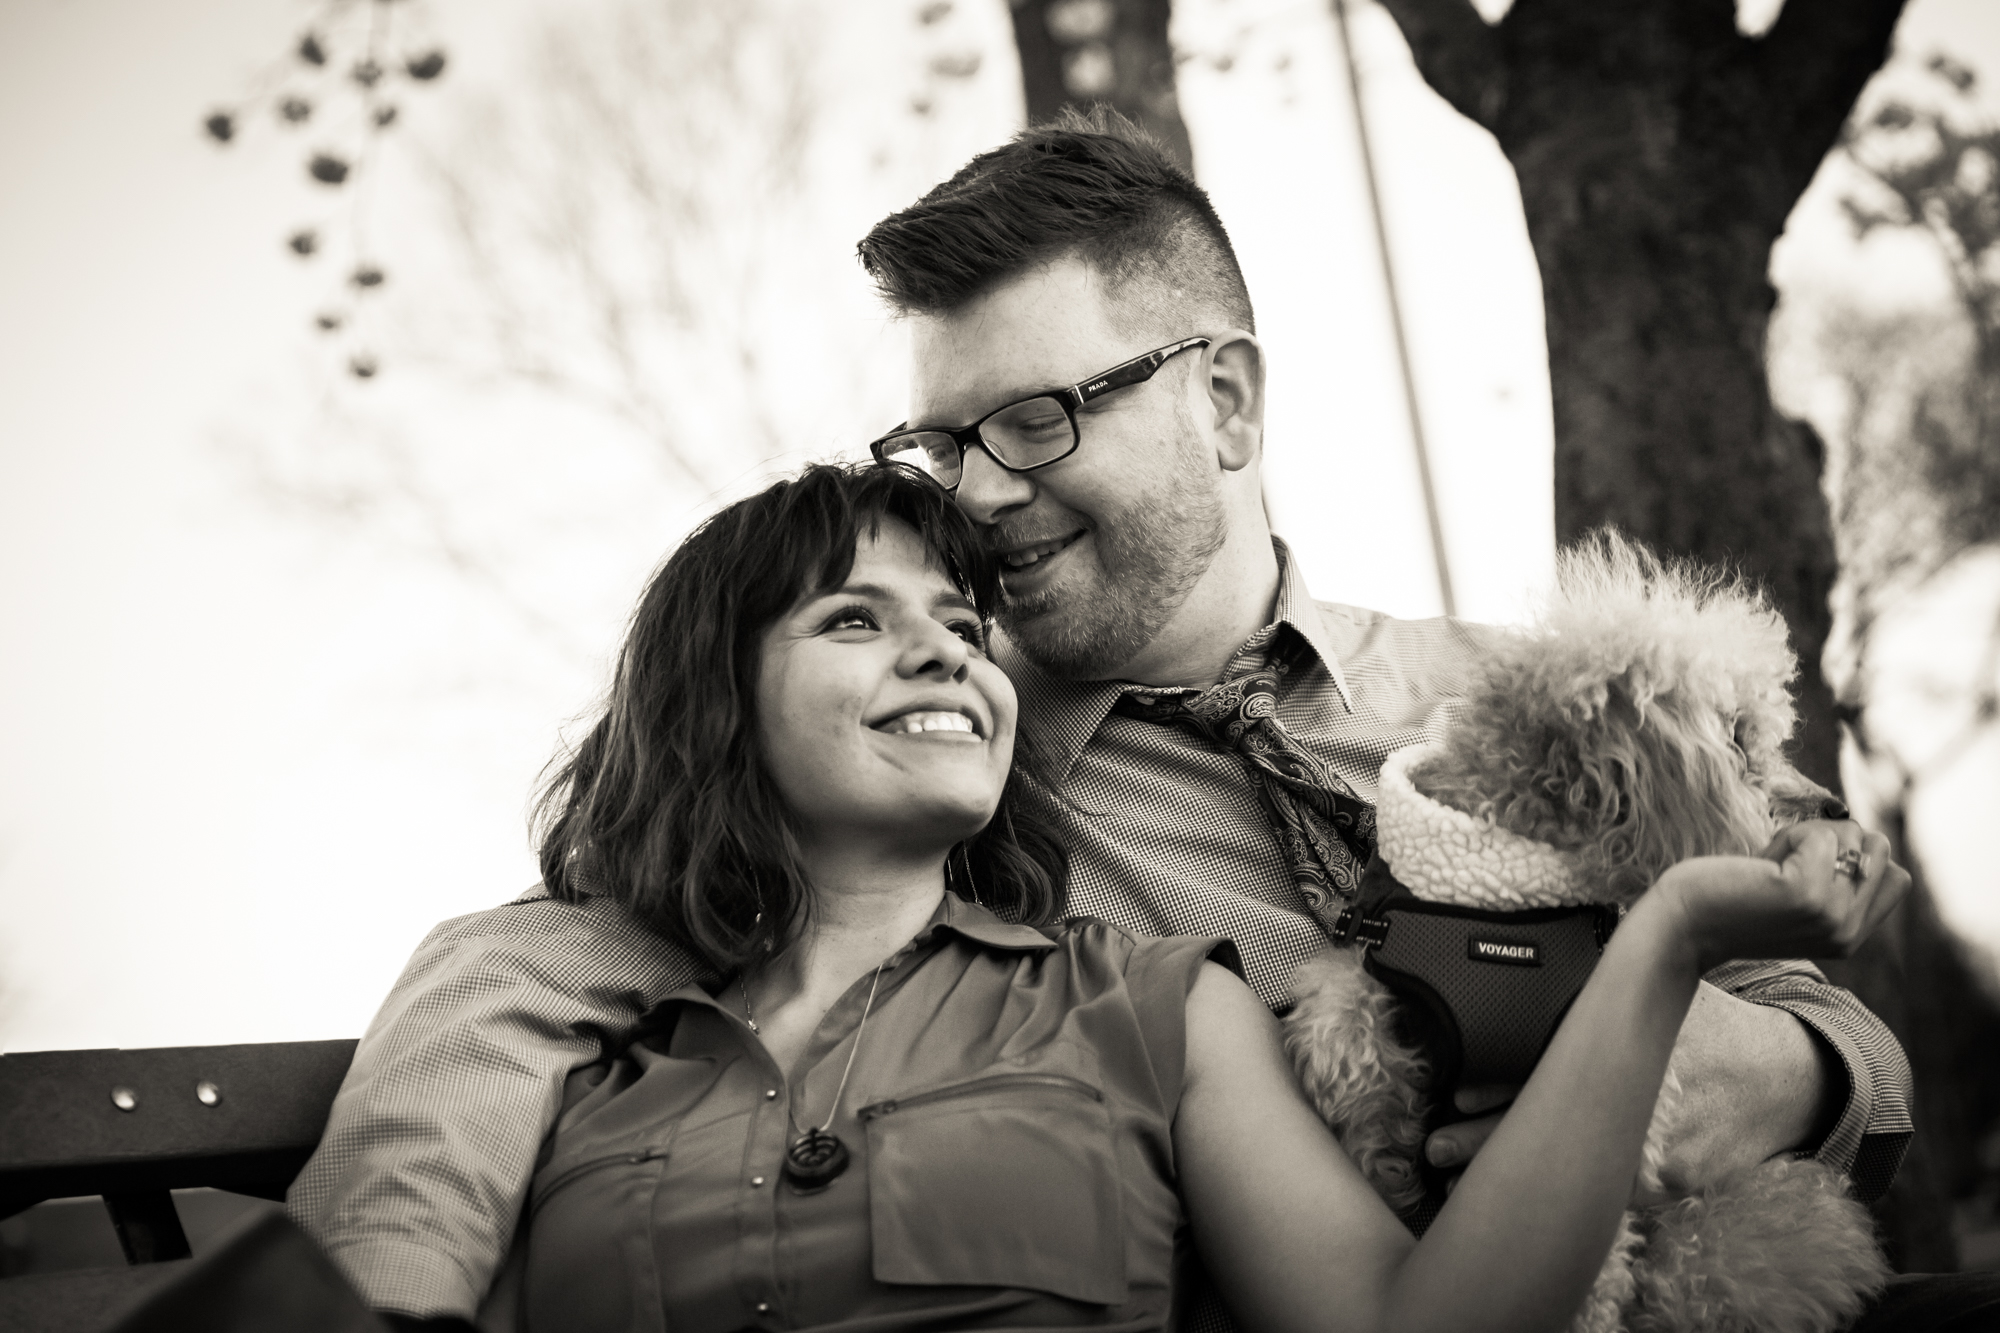 Portrait of engaged couple on park bench for article on cherry blossom photo tips